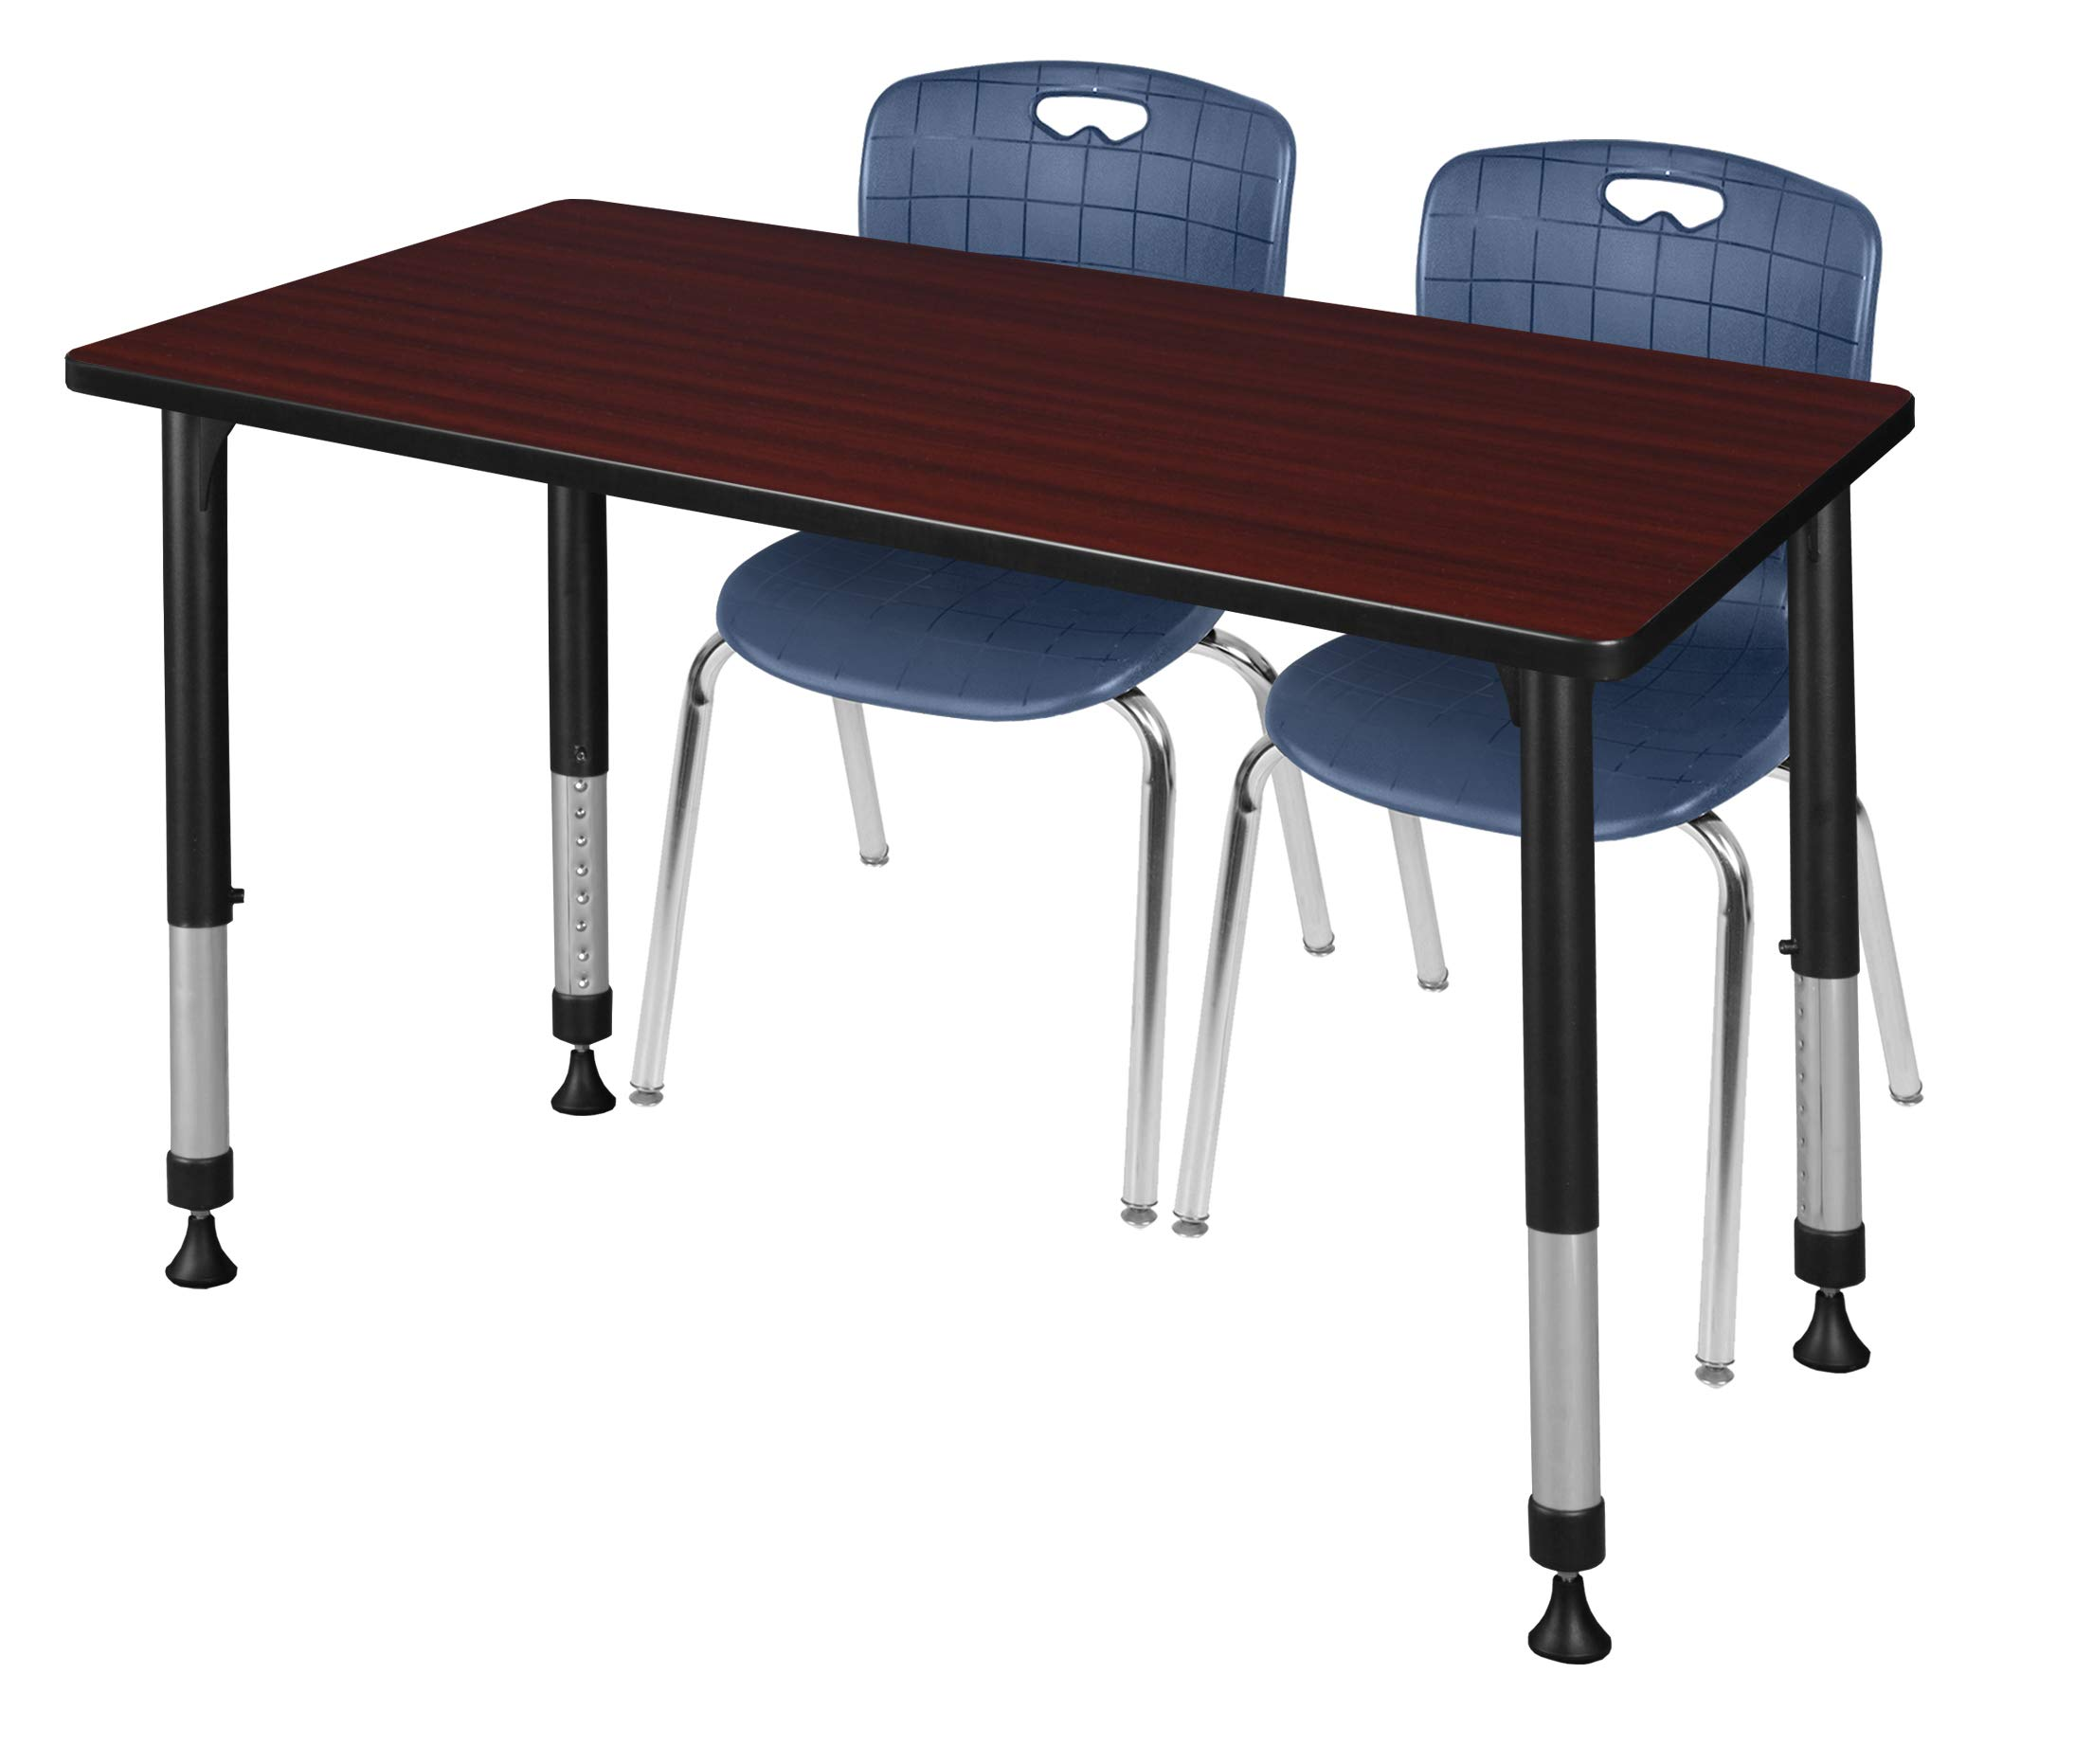 Regency MT4830MHAPBK40NV Kee Height Adjustable Classroom Table Set with Two 18'' Andy Chairs 48'' x 30'' Mahogany/Navy Blue